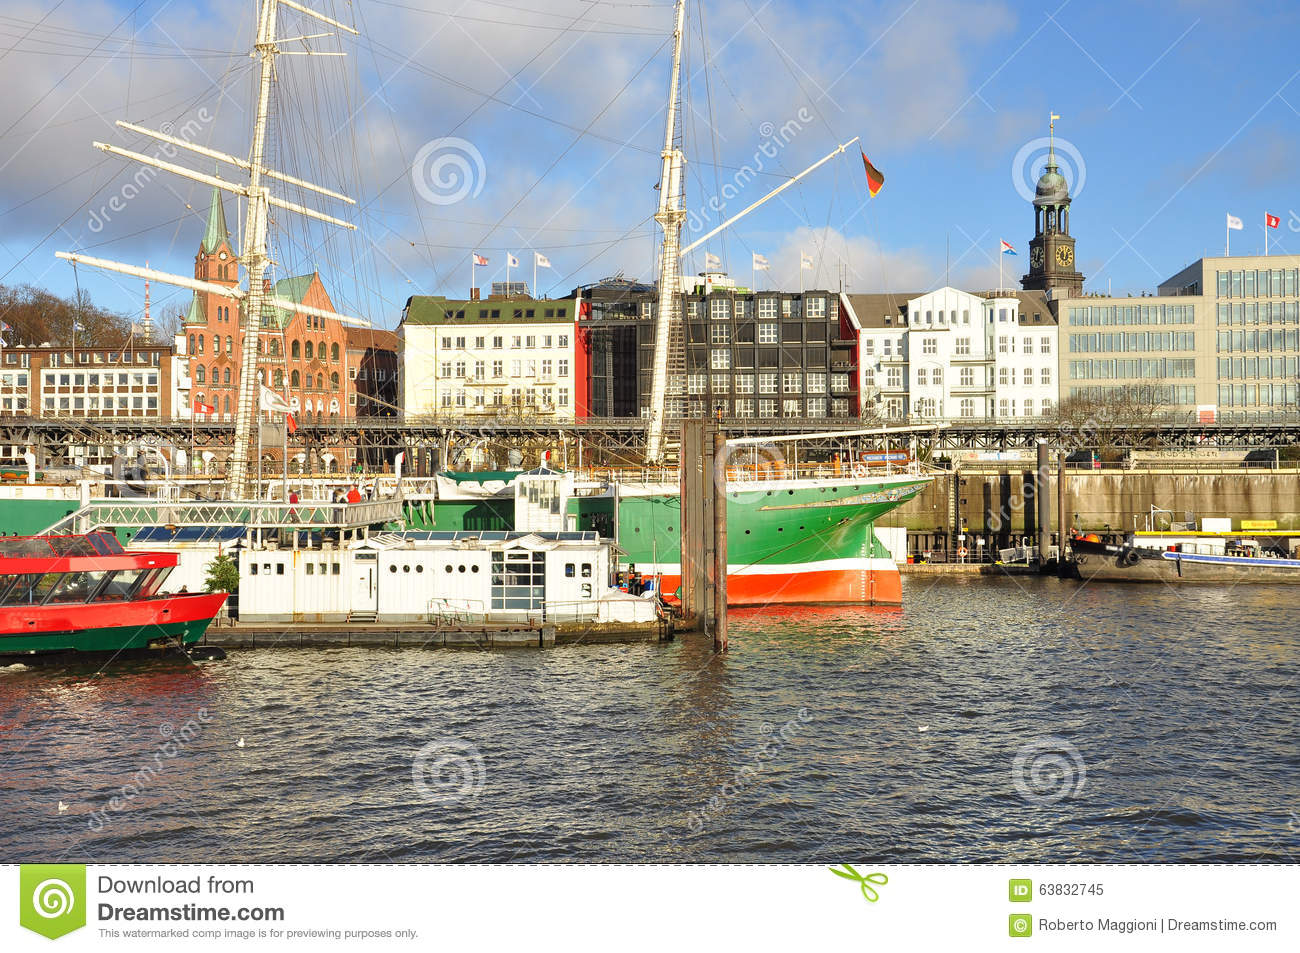 Stock photo hamburg germany riverside new - Hamburg Harbour And City Waterfront Germany Stock Photo